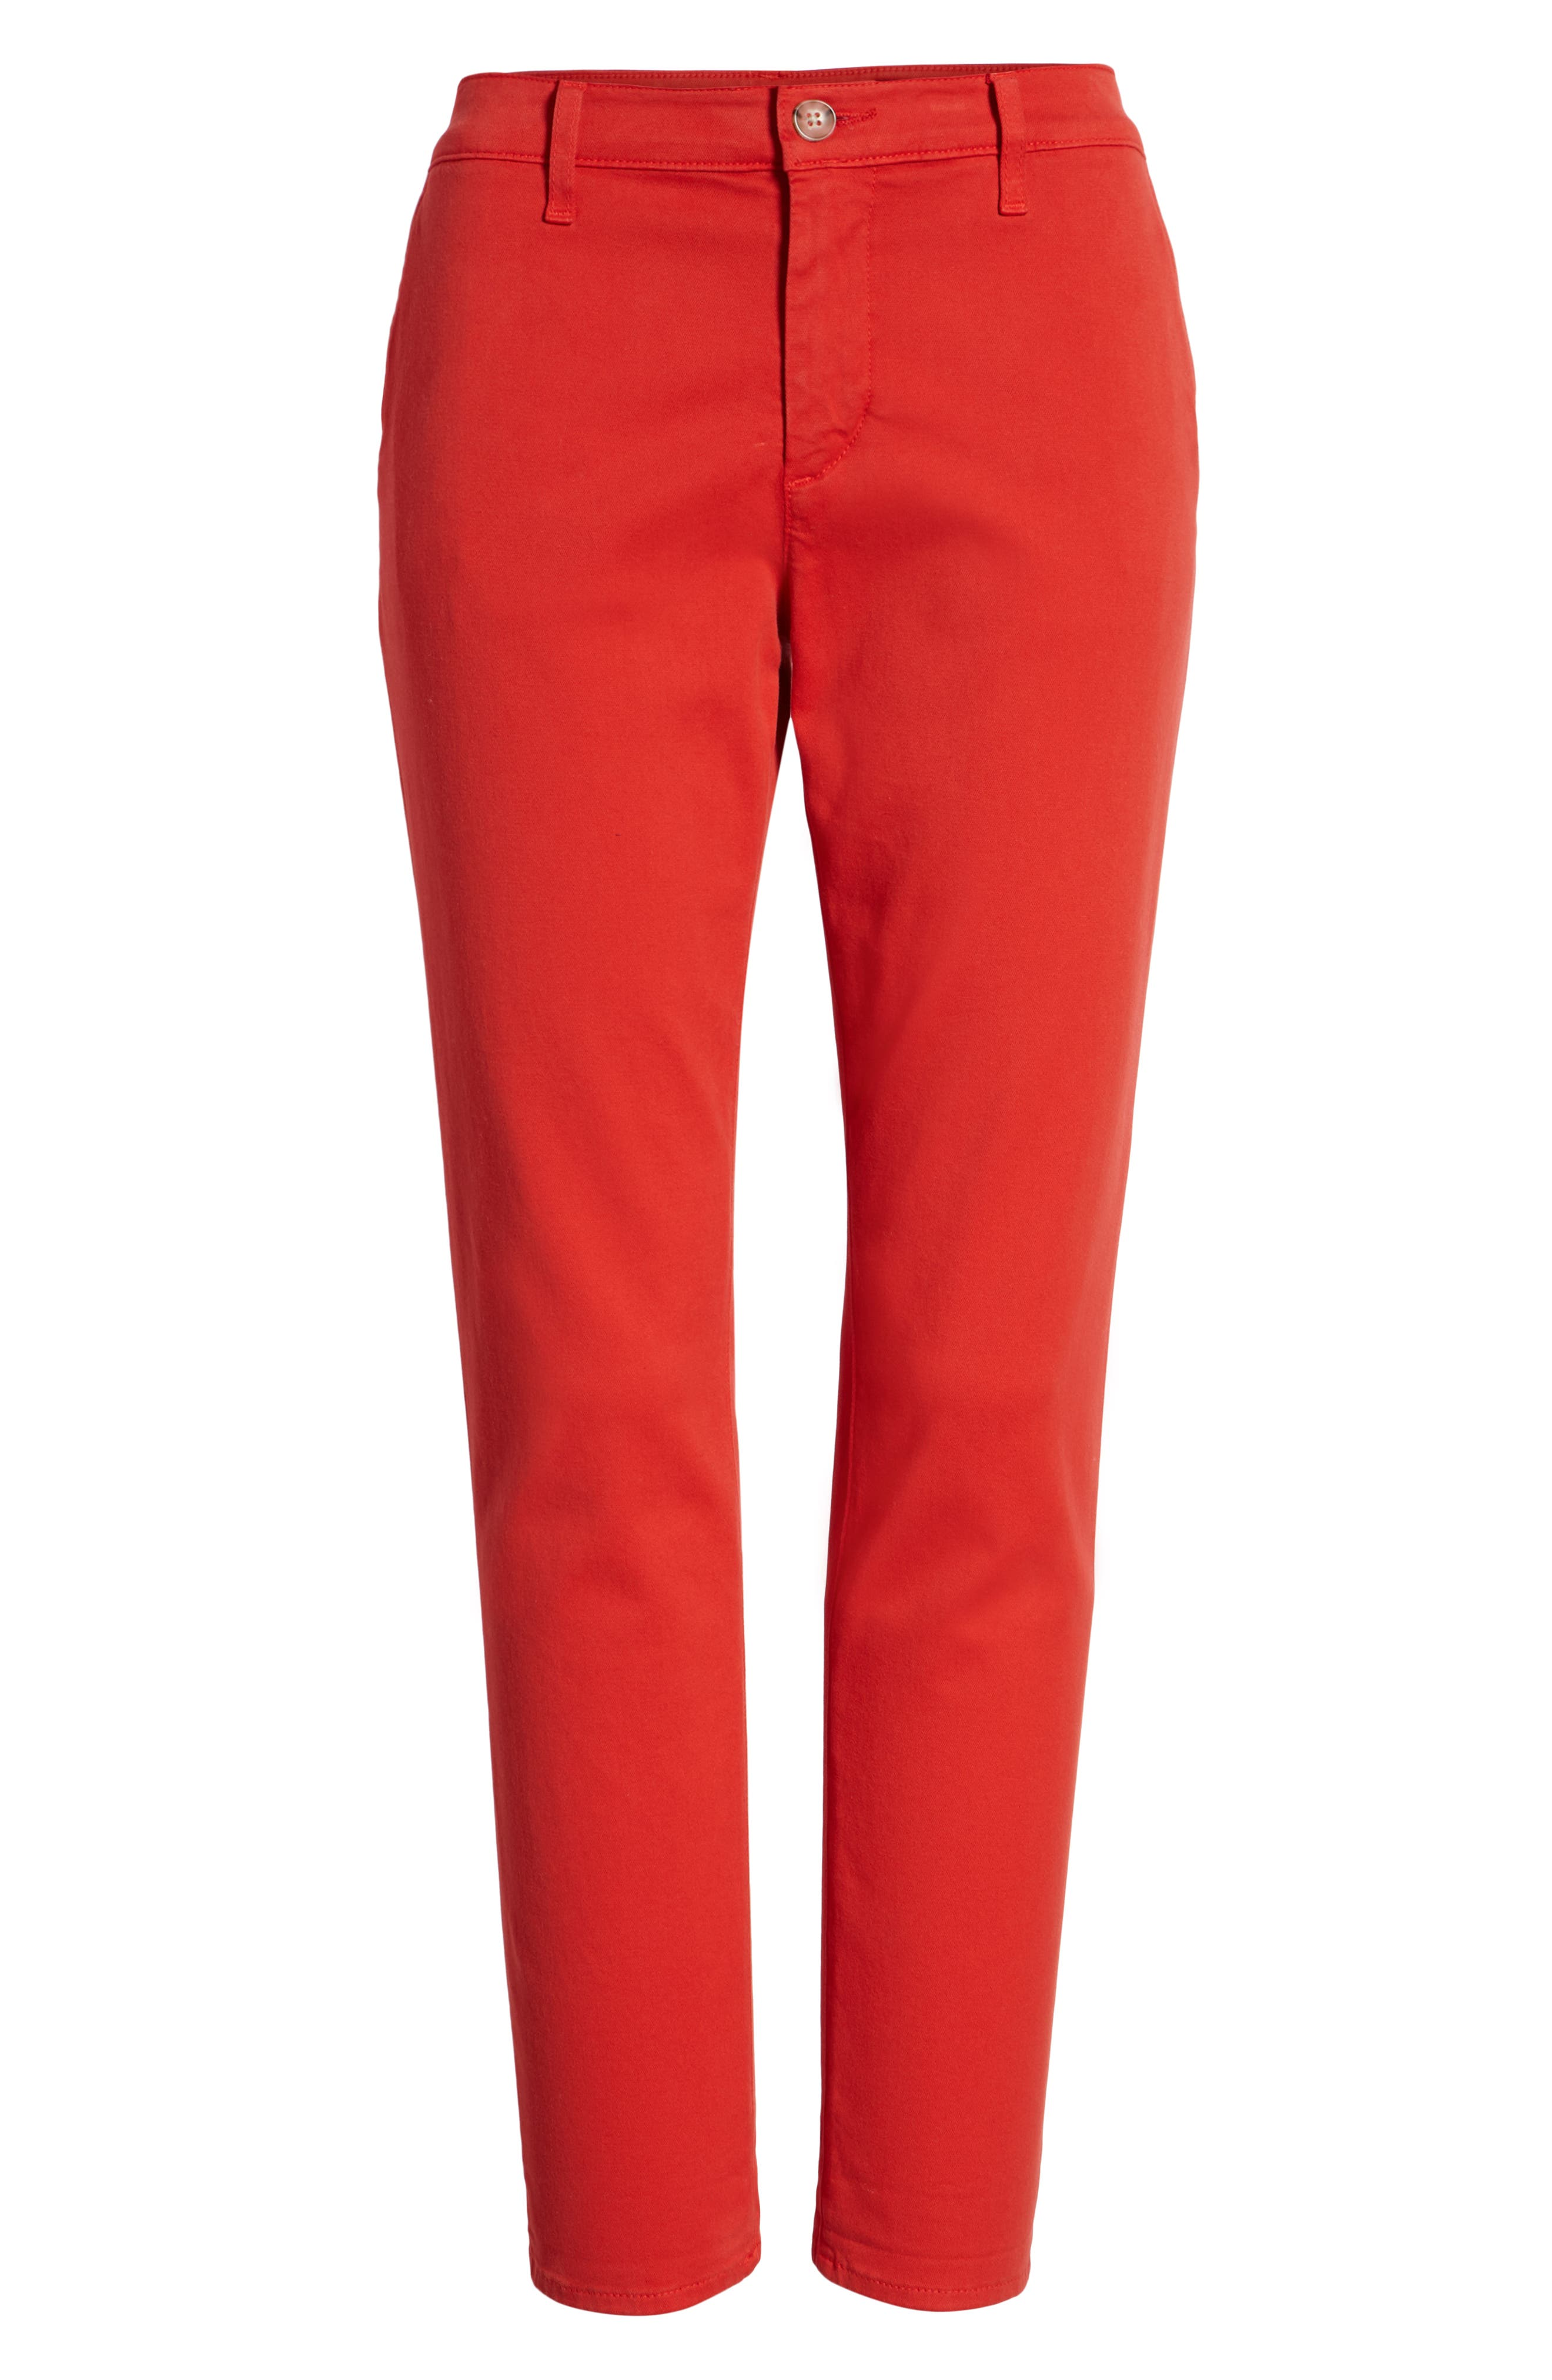 Caden Crop Twill Trousers,                             Alternate thumbnail 7, color,                             Red Poppy